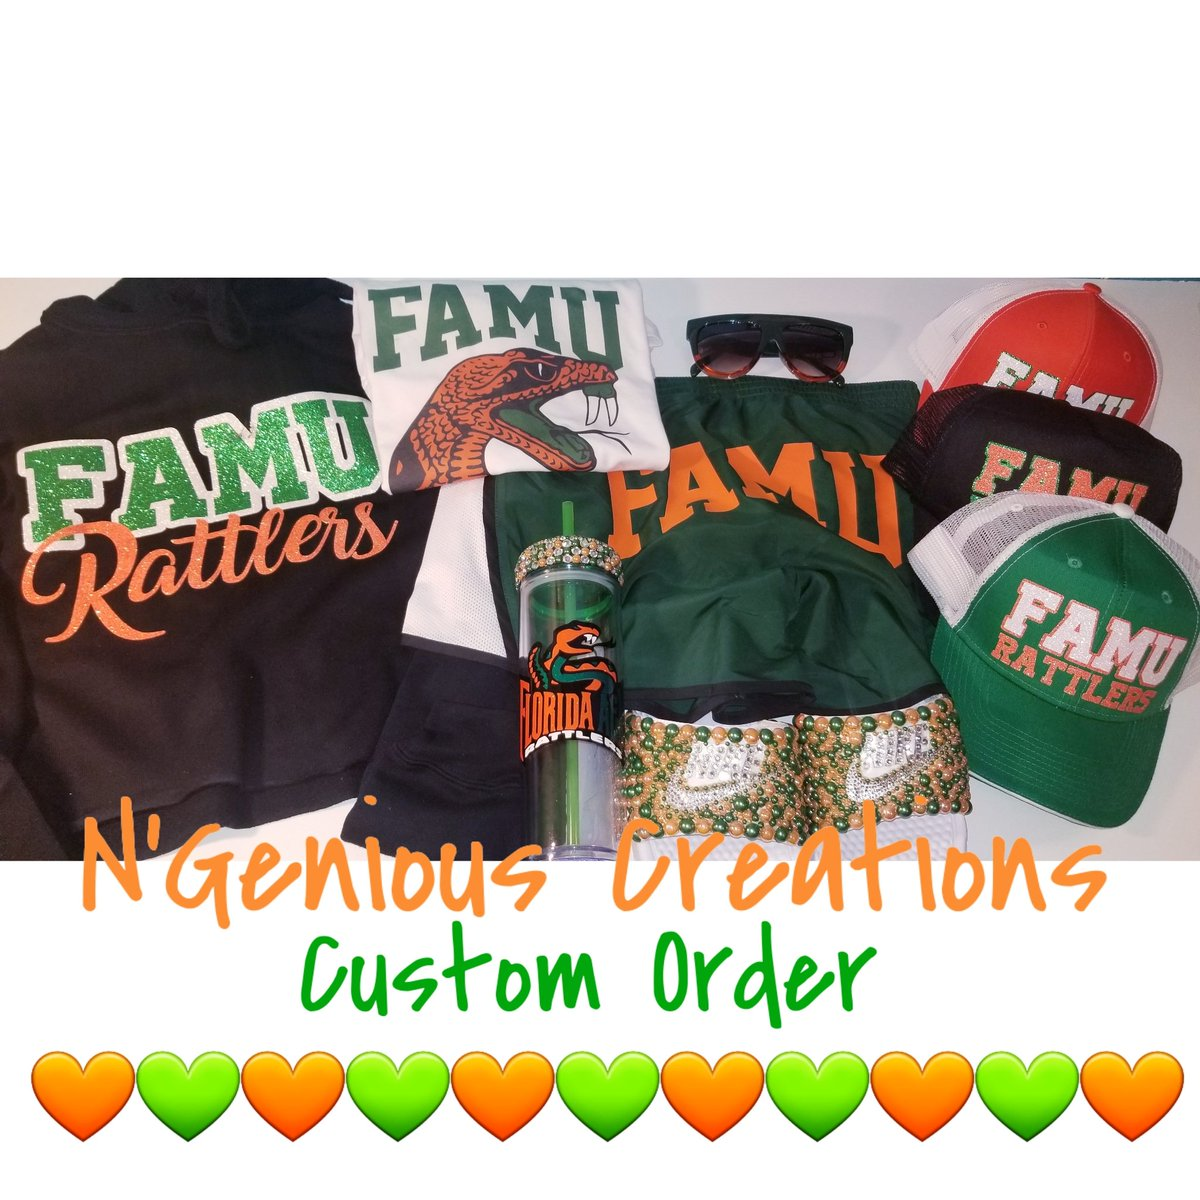 Custom order done for a student at FAMU. Contact us for any custom apparel/accessories  NgeniousCreations@gmail.com No order is too big or small. #CustomTees #CustomTshirts #CustomApparel #FAMU #OrangeAndGreen #HBCU #NgeniousCreationspic.twitter.com/99pBxBqztX